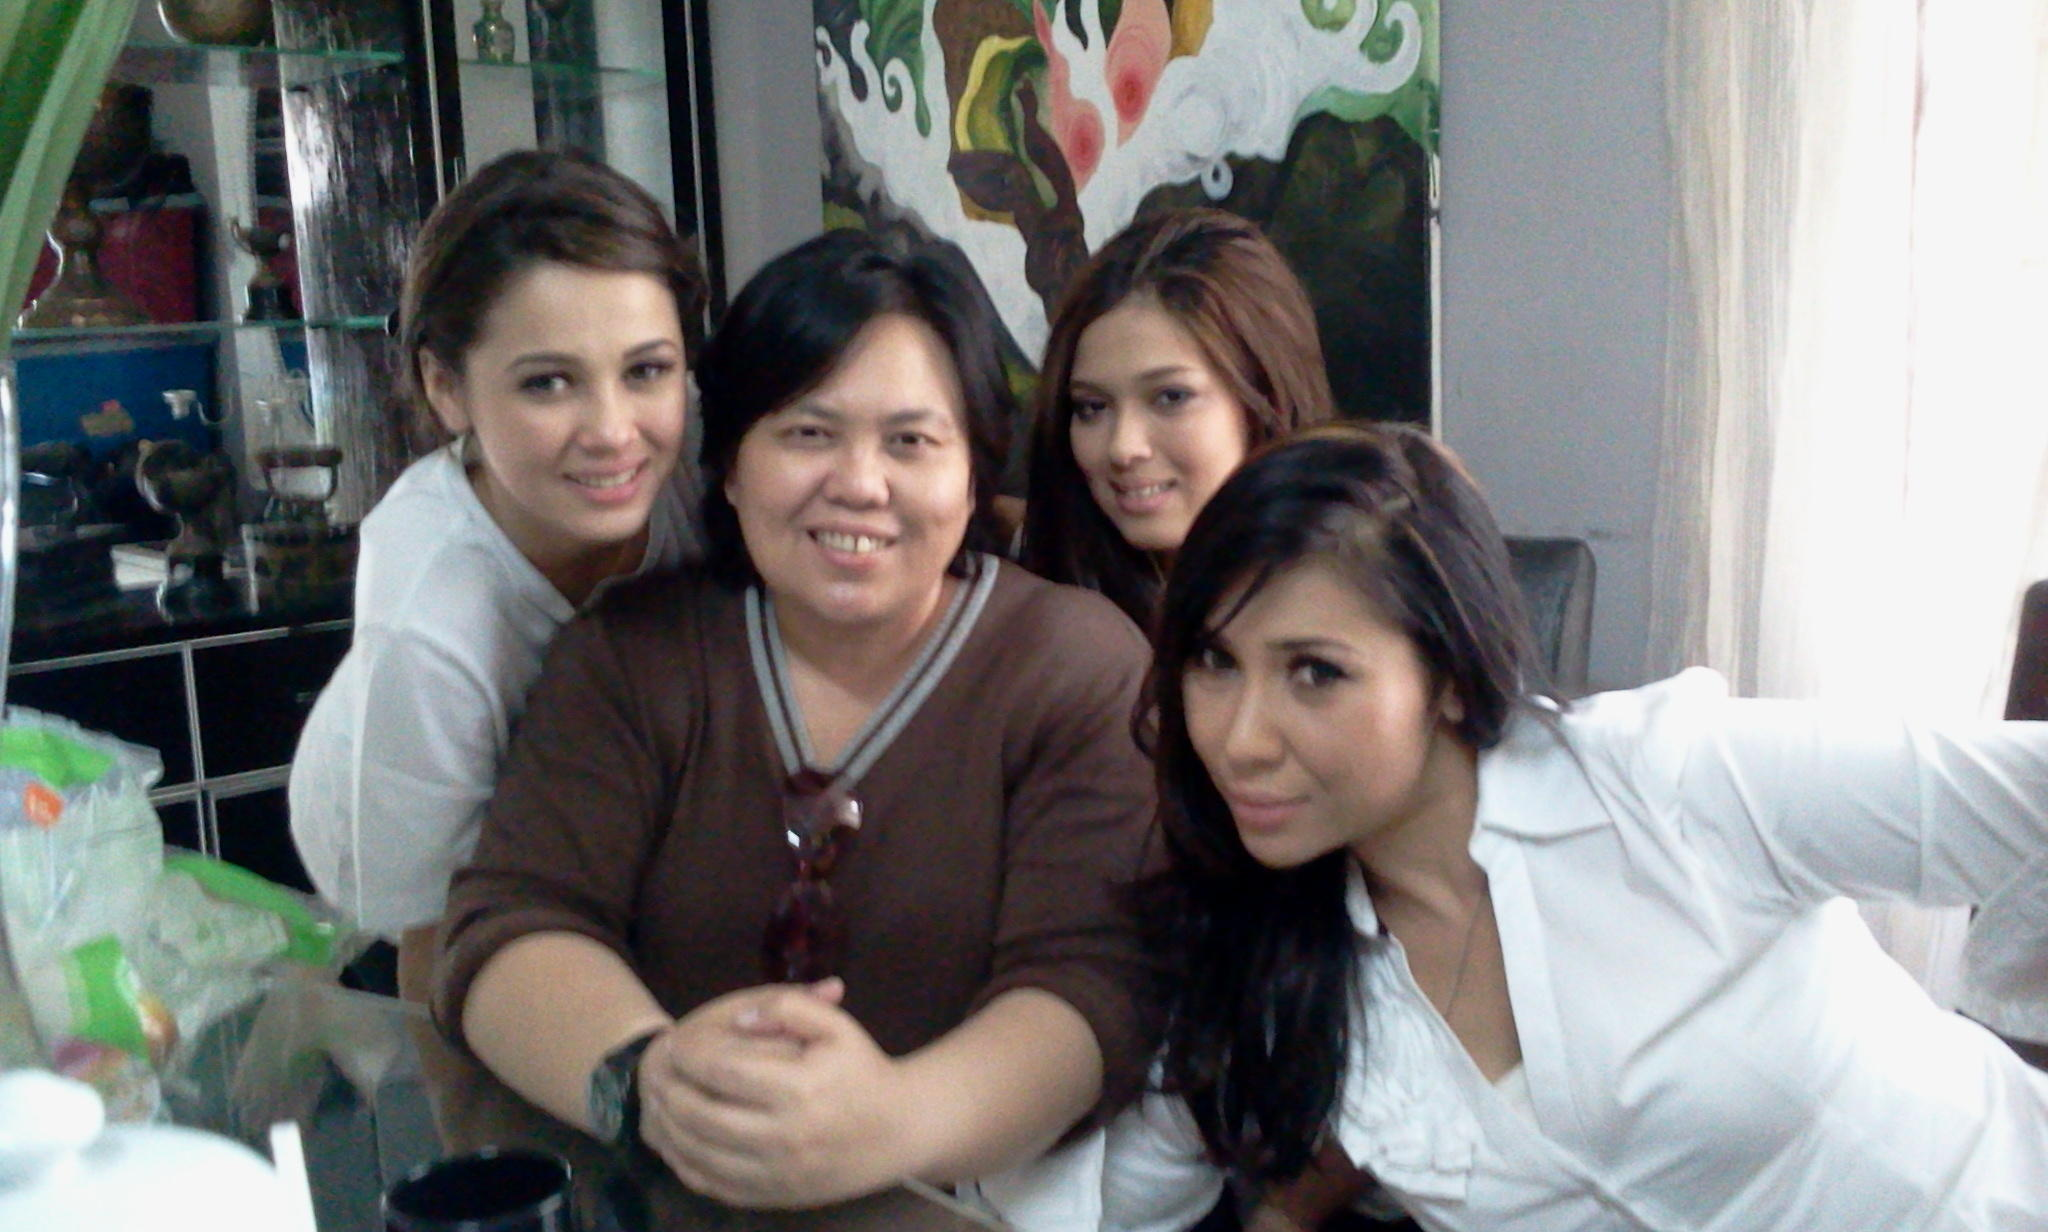 : with the maembong's, Emma, Chacha and Yaya. http://t.co/DIKxKHby